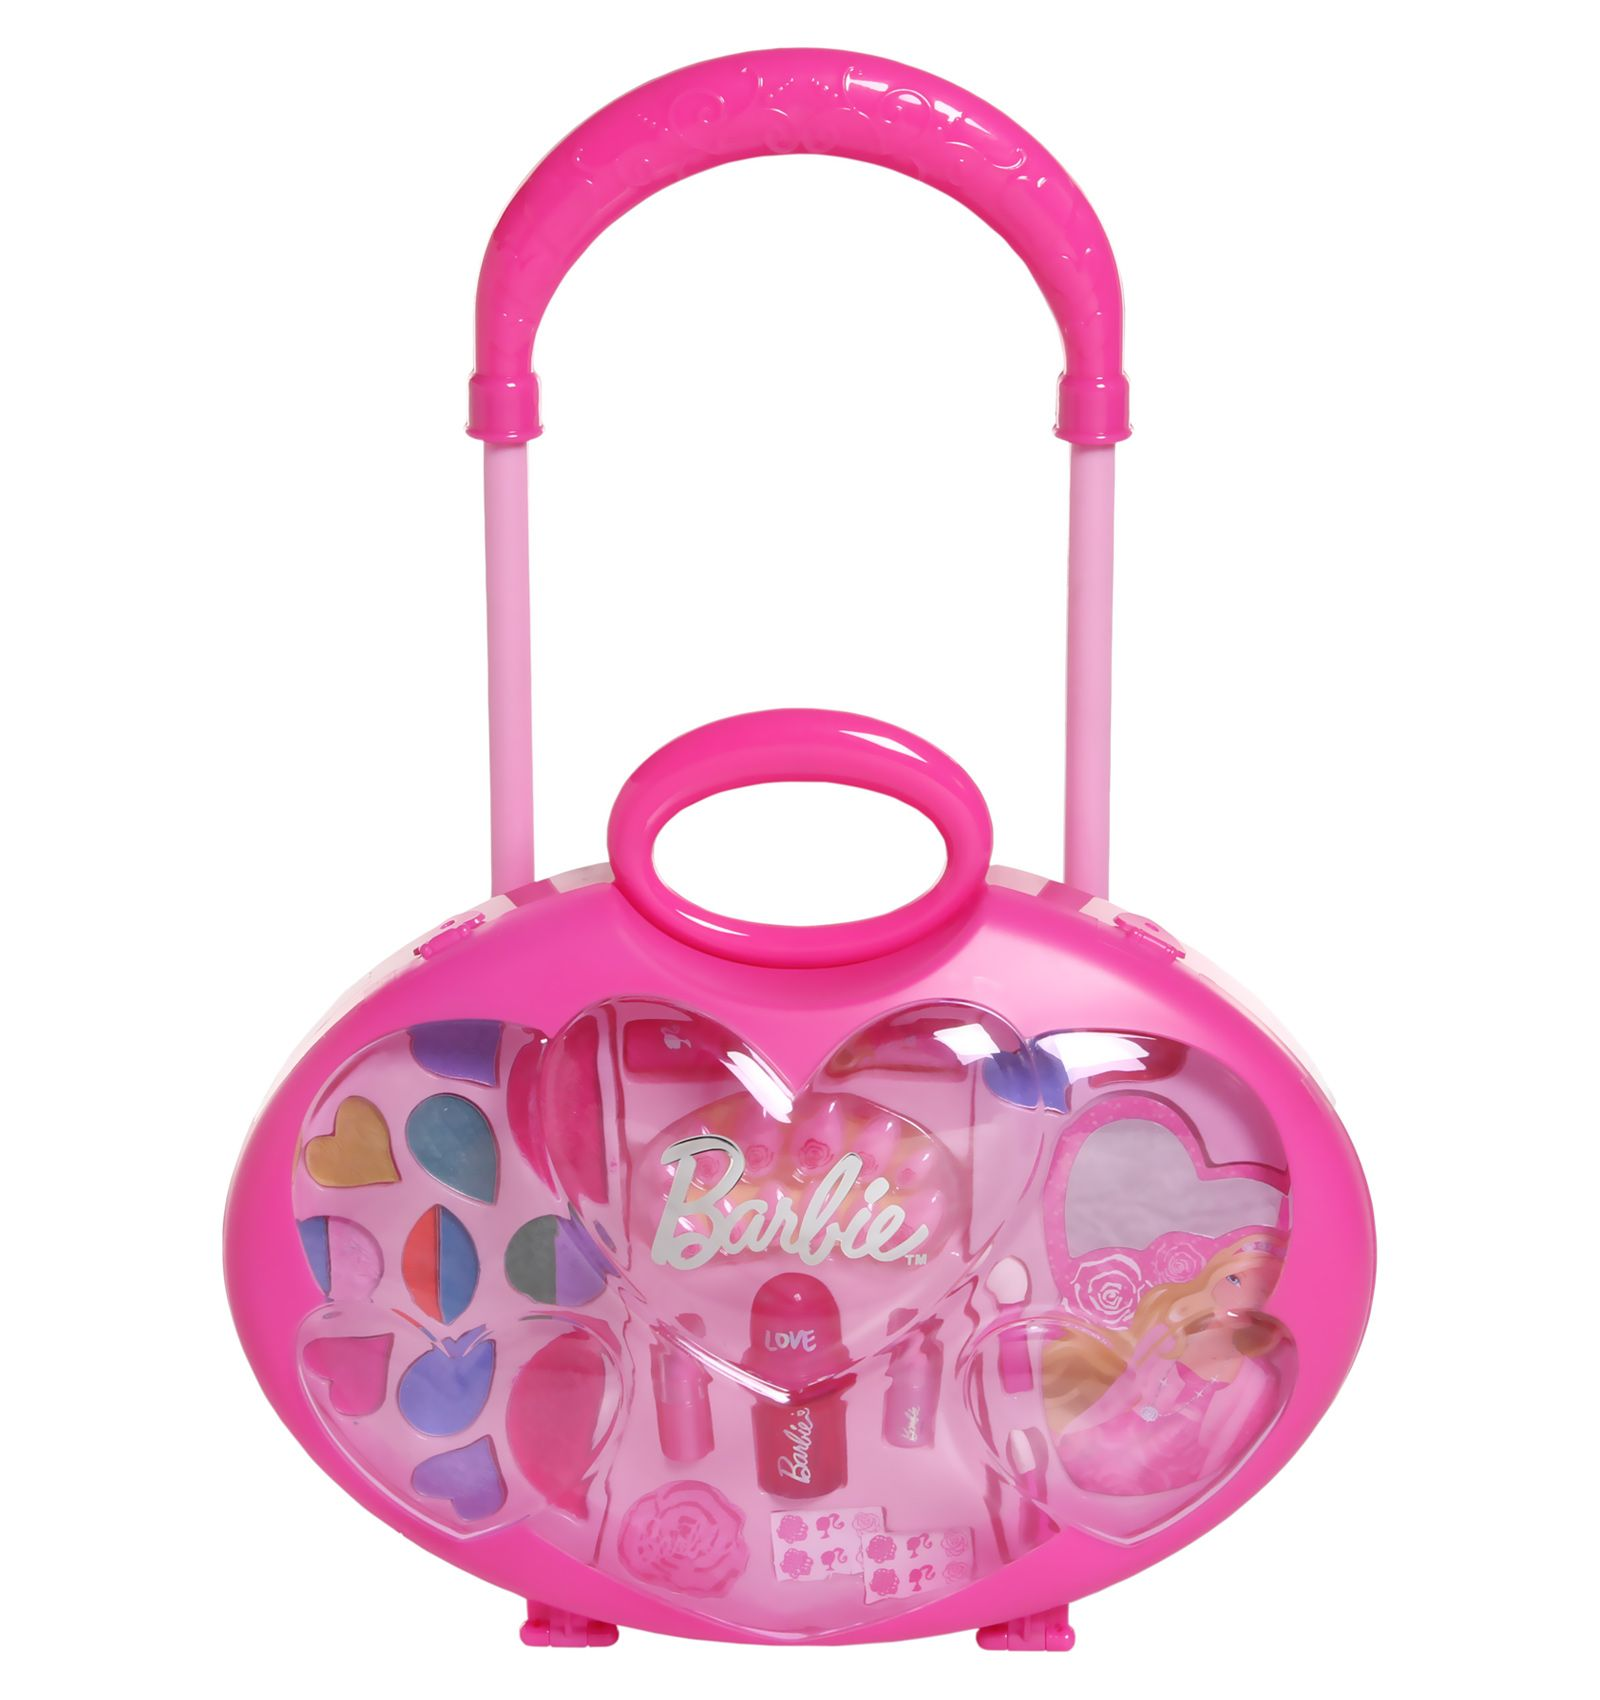 Pin by Haiti Harrison on Indi's pins - my 4 year old ...  |Barbie Makeup Kit For Kids